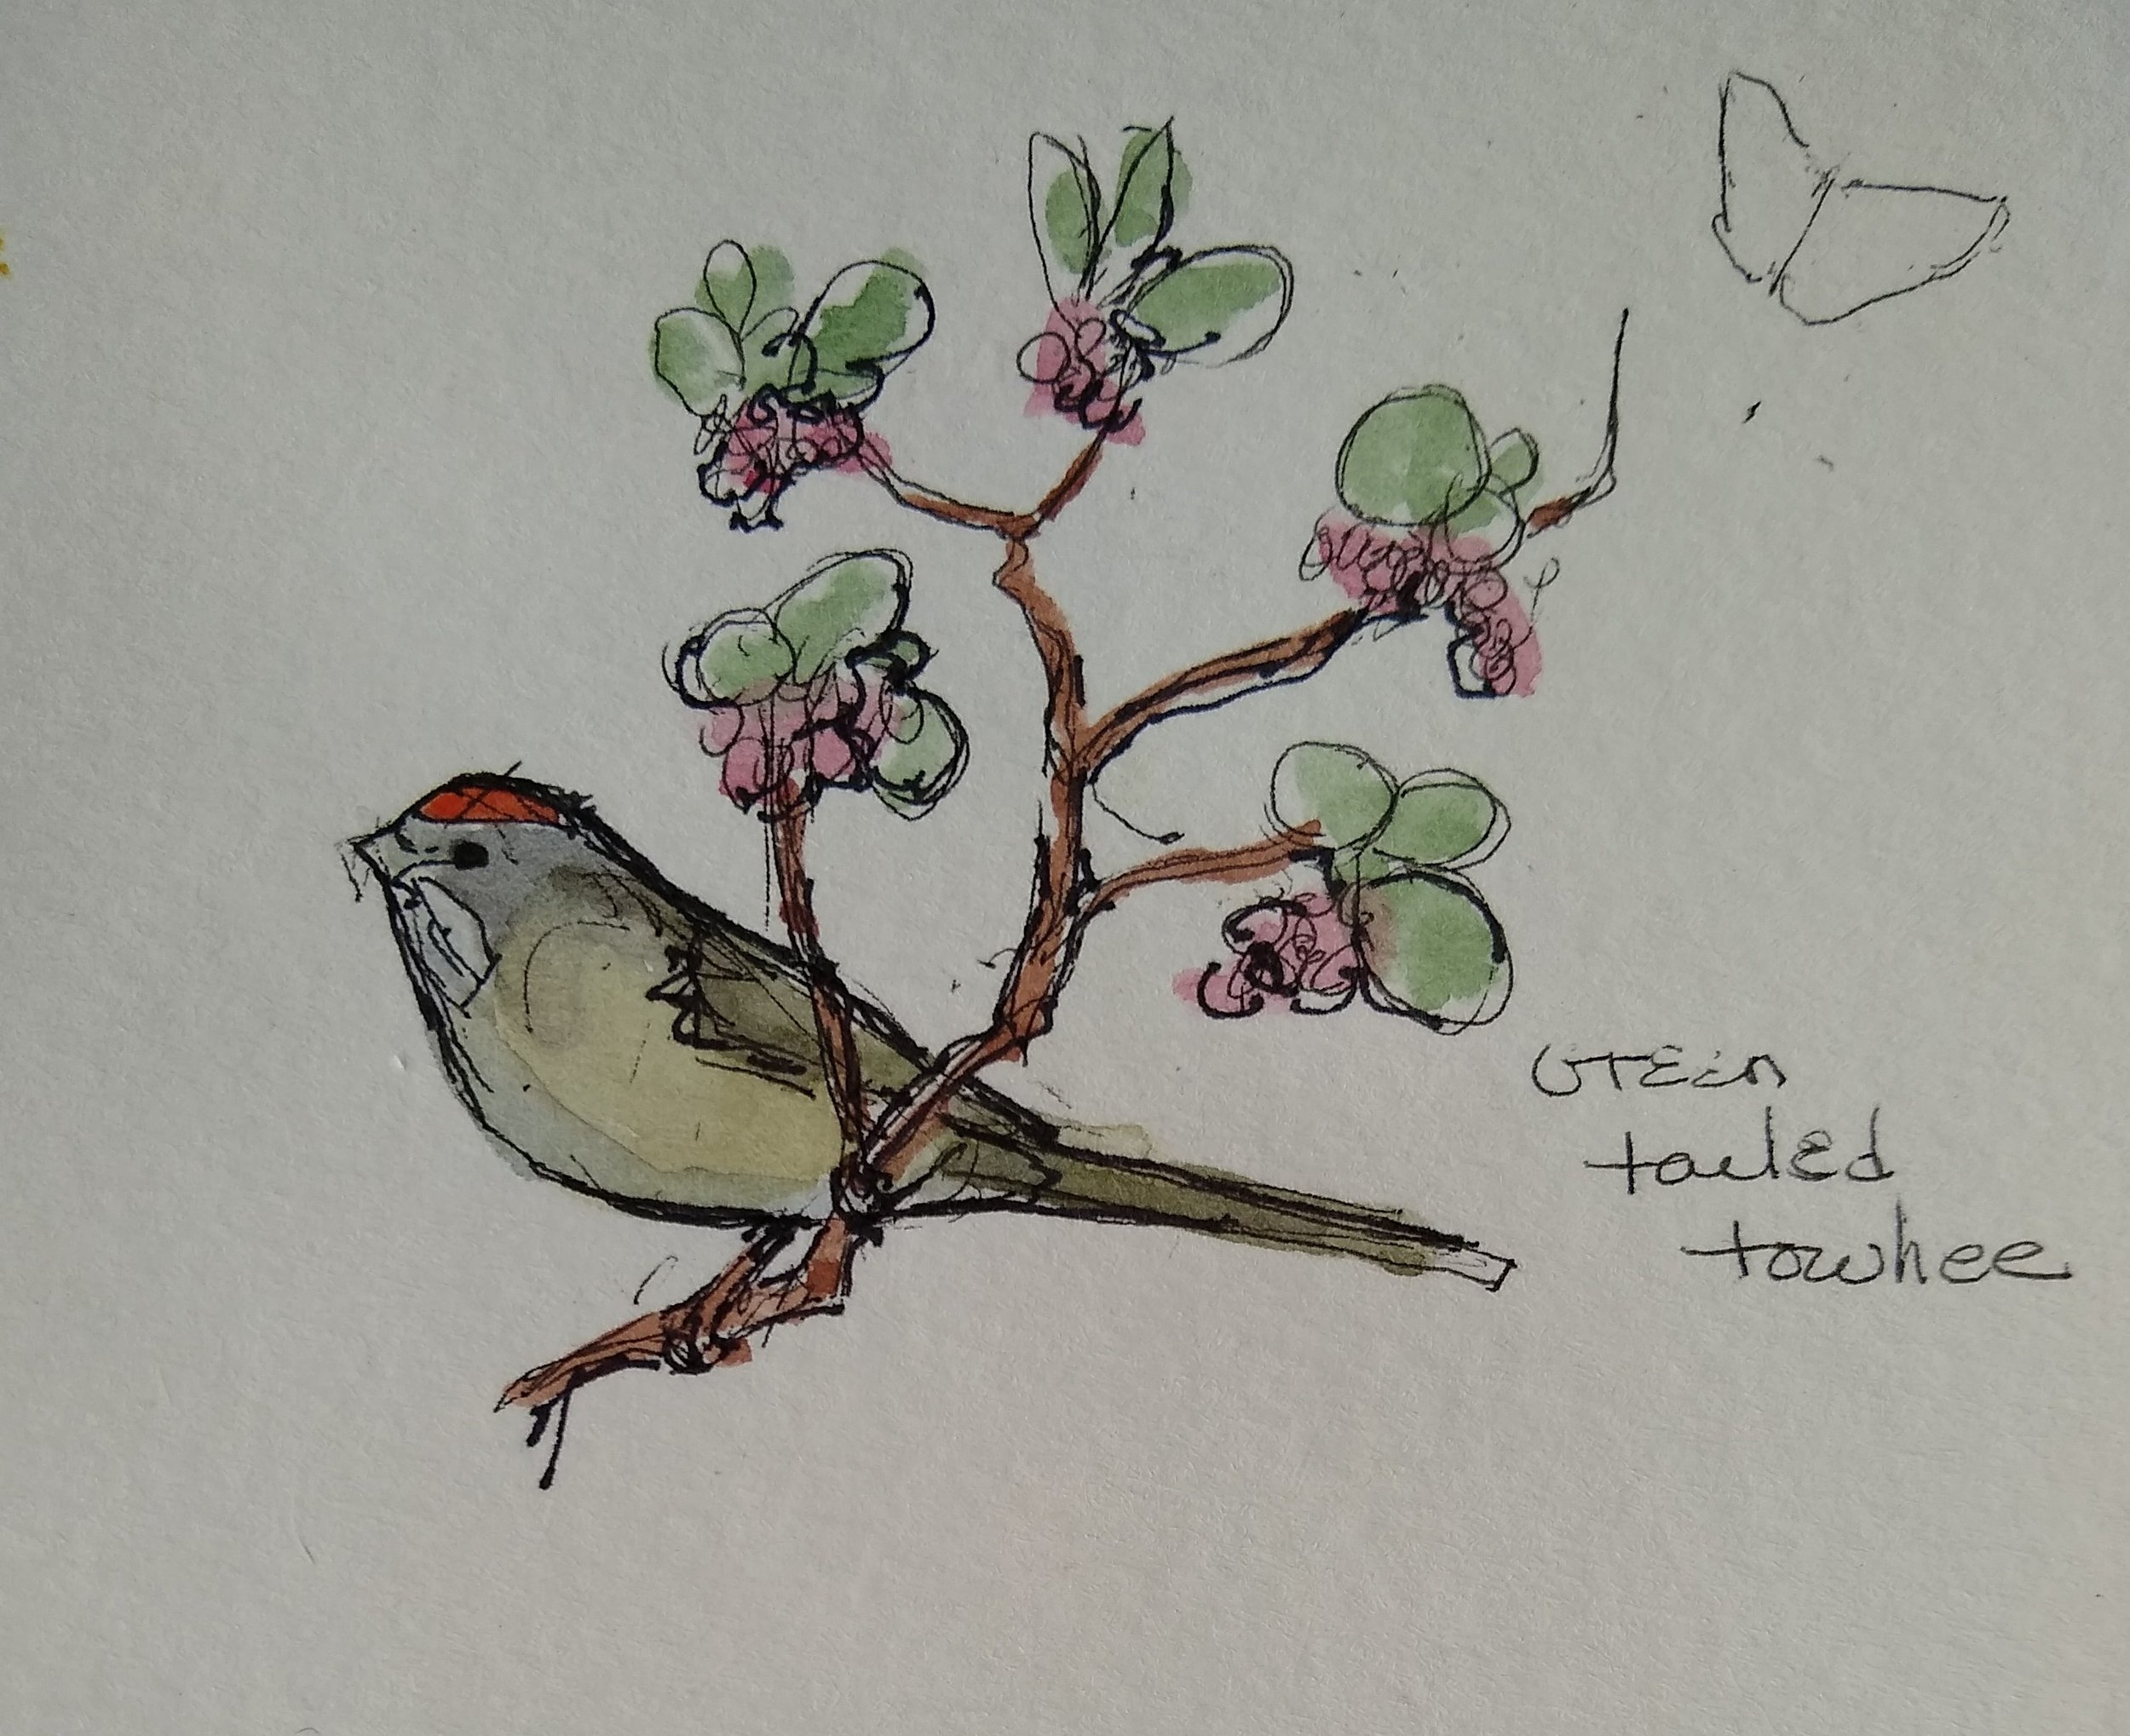 Towhee and manzanita sketch 2019